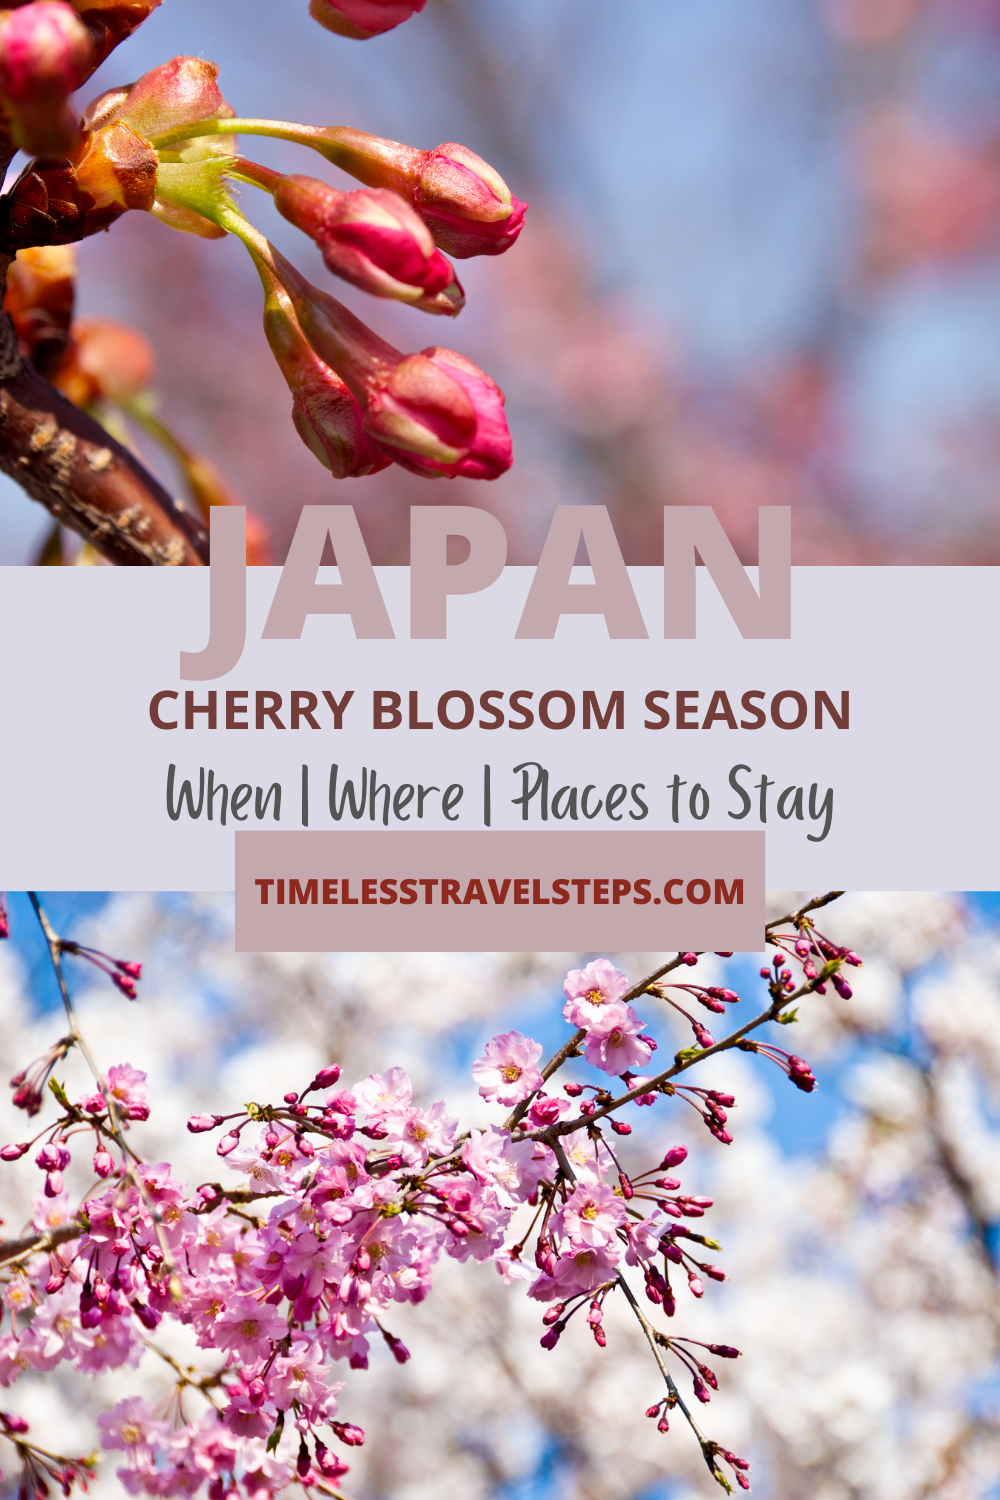 Cherry blossom season in Japan - A simple guide to where, when and what you need to know when planning your Hanami vacation. via @GGeorgina_mytimelessfootsteps/